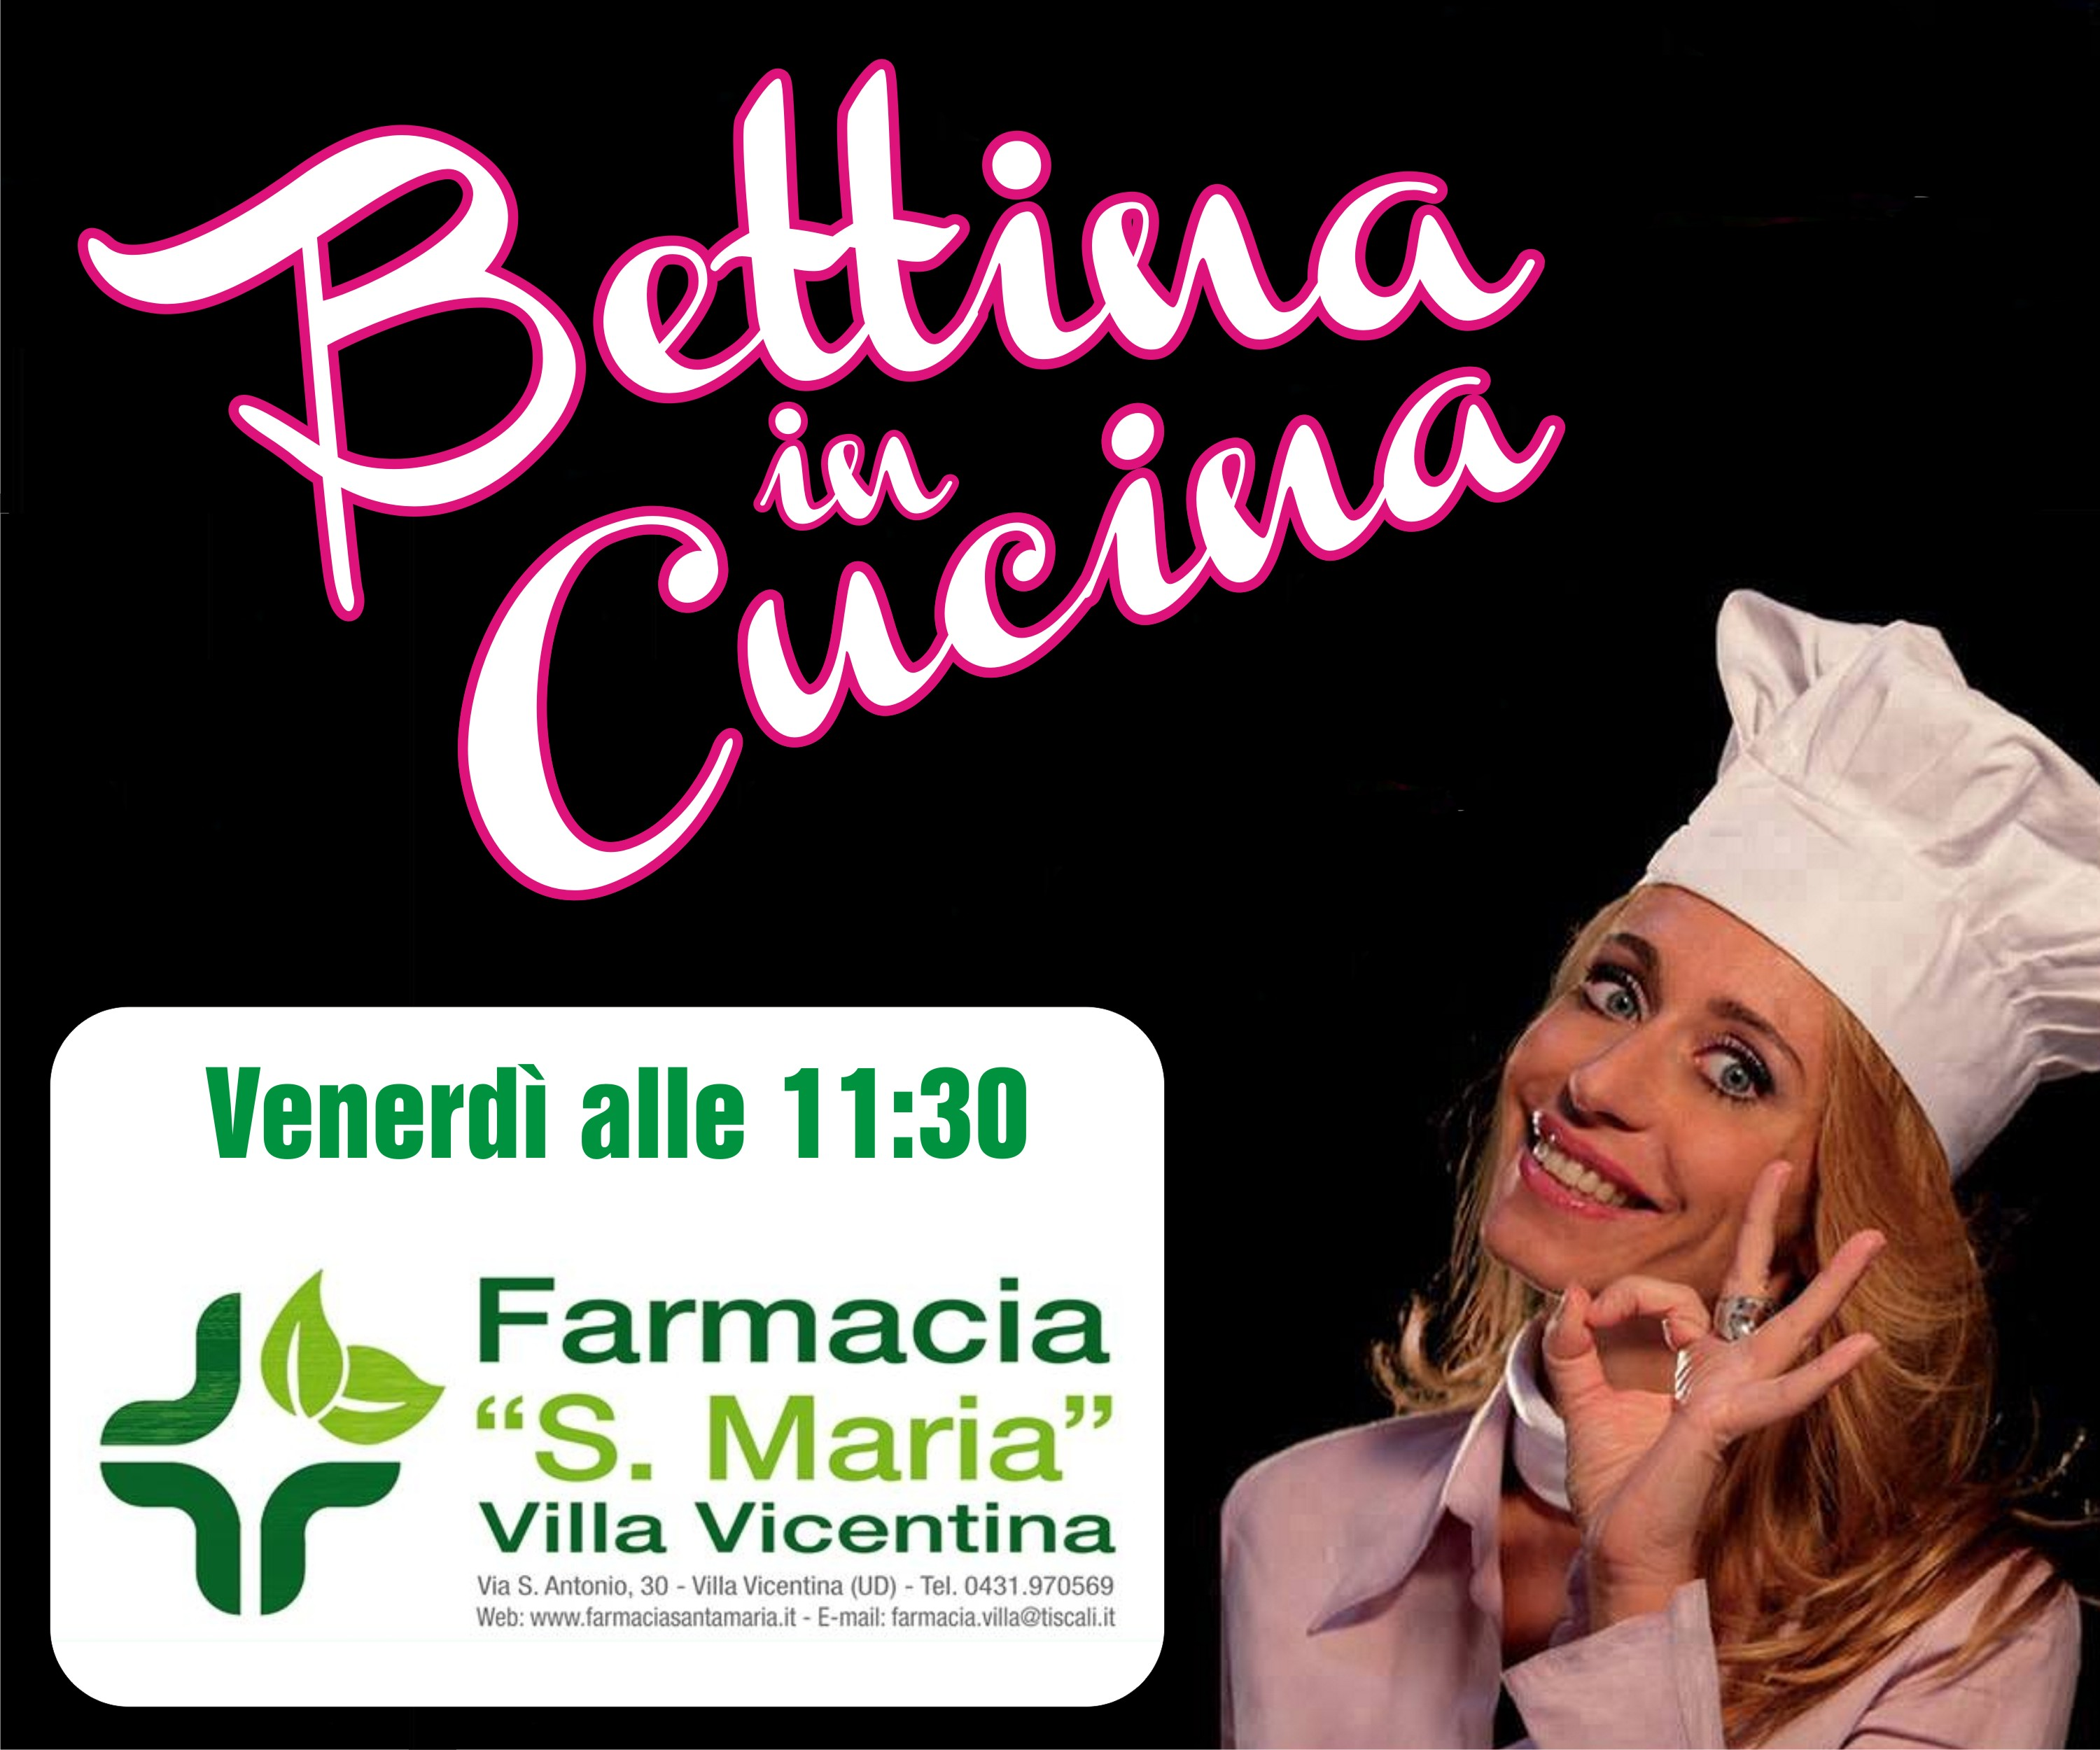 Bettina in Cucina con Farmacia Santa Maria